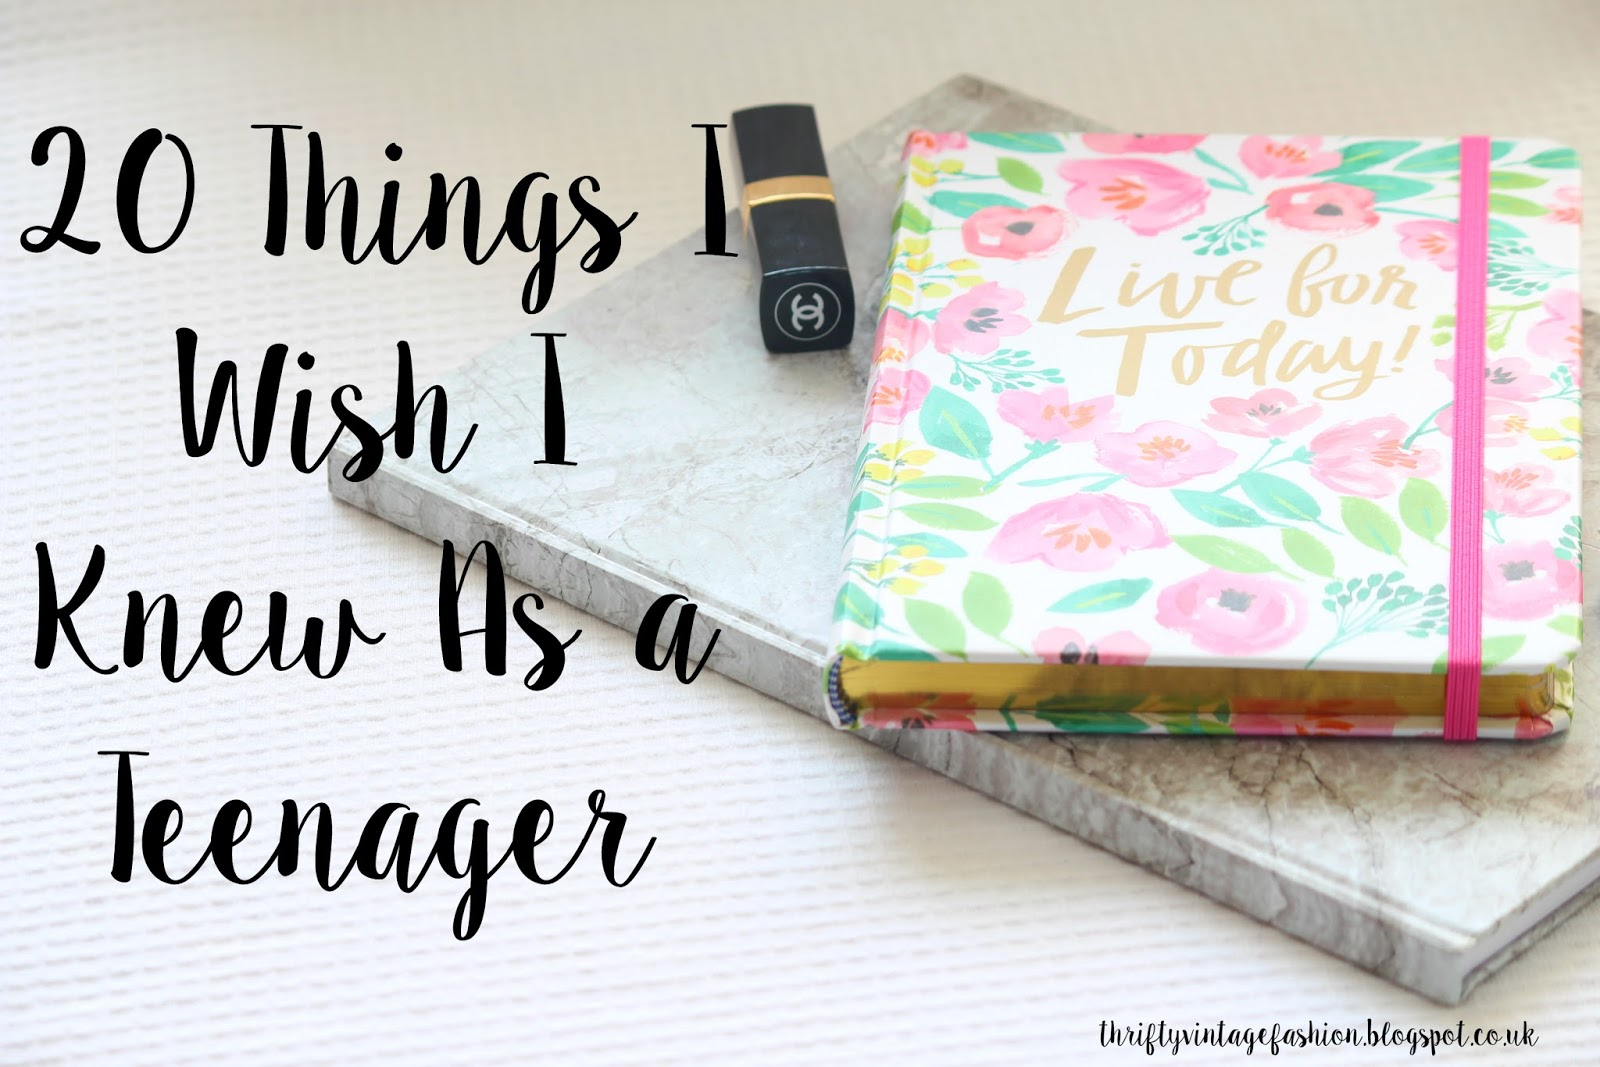 20 Things I Wish I Knew As a Teenager lifestyle blog UK